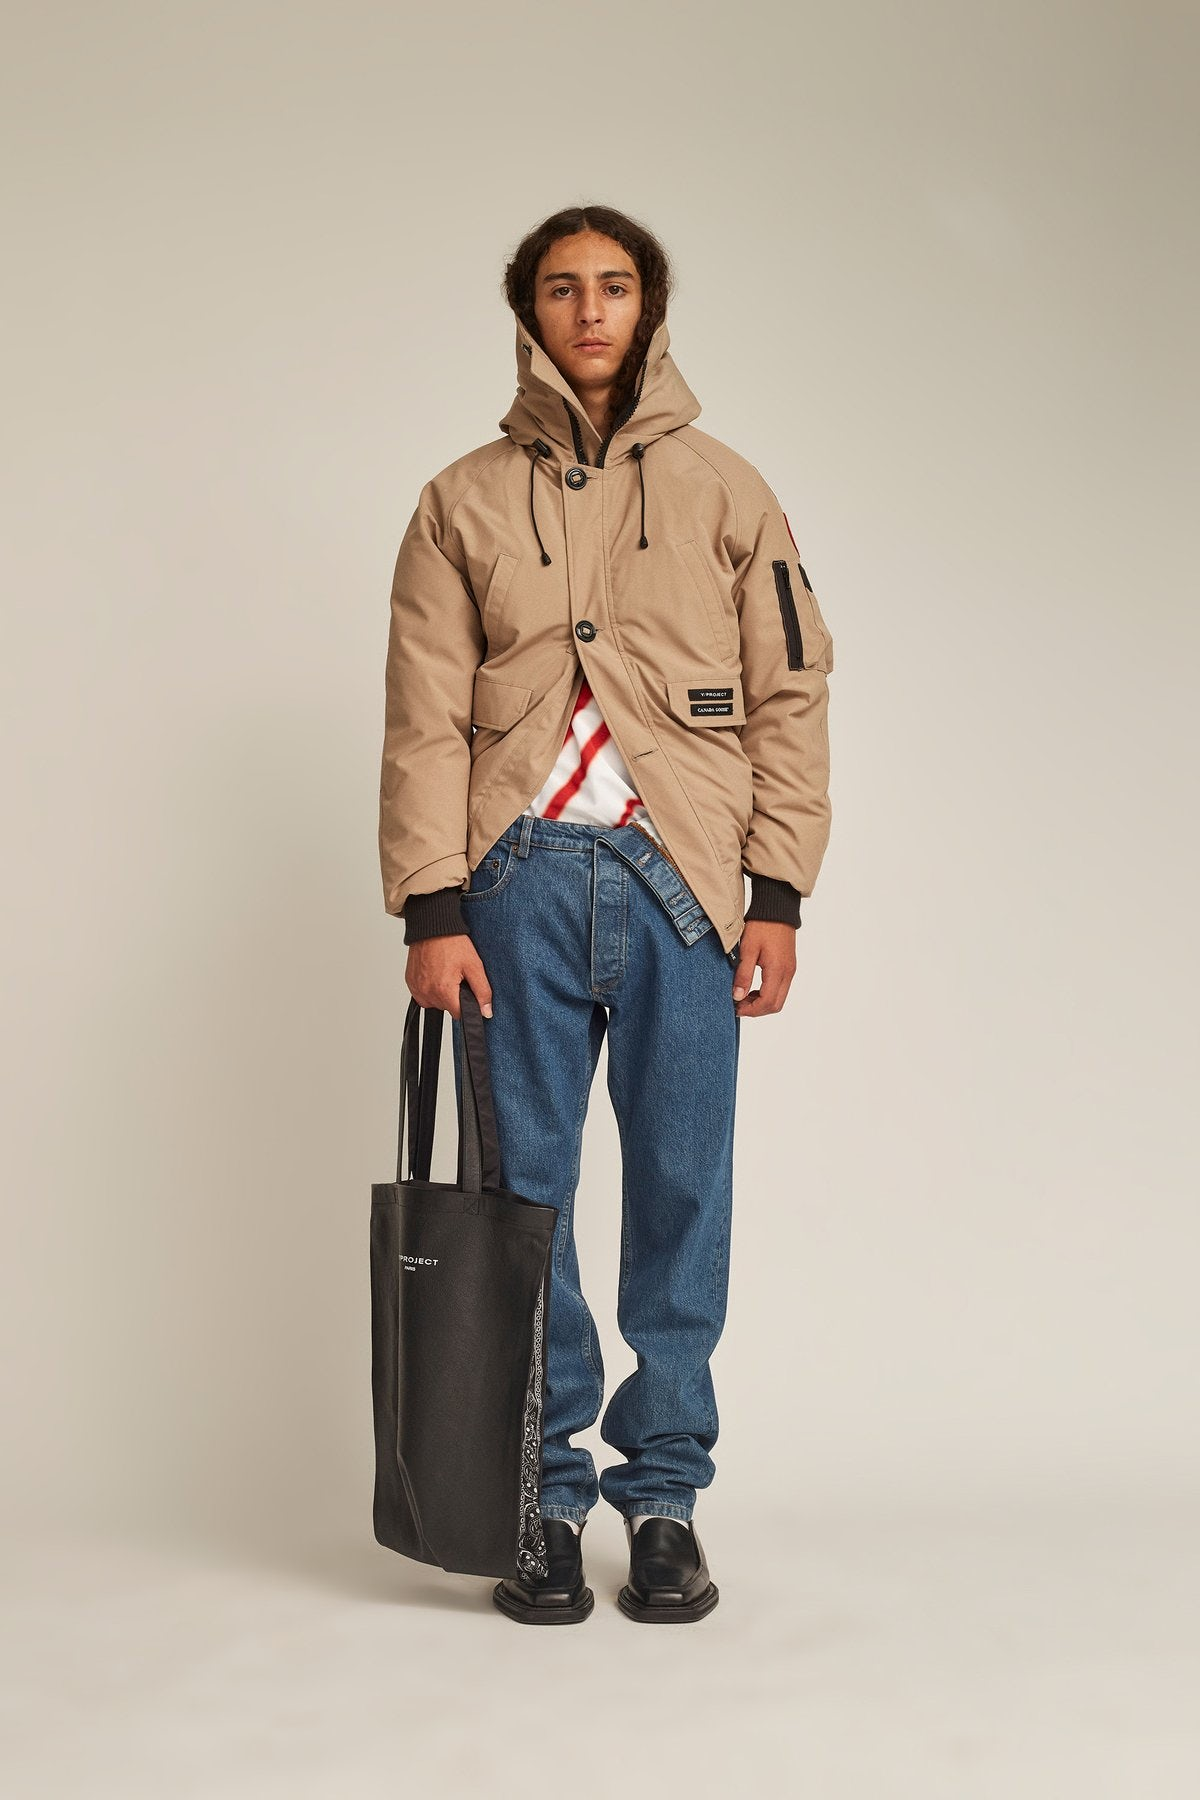 A look from the Y/Project x Canada Goose collaboration. Y/Project.